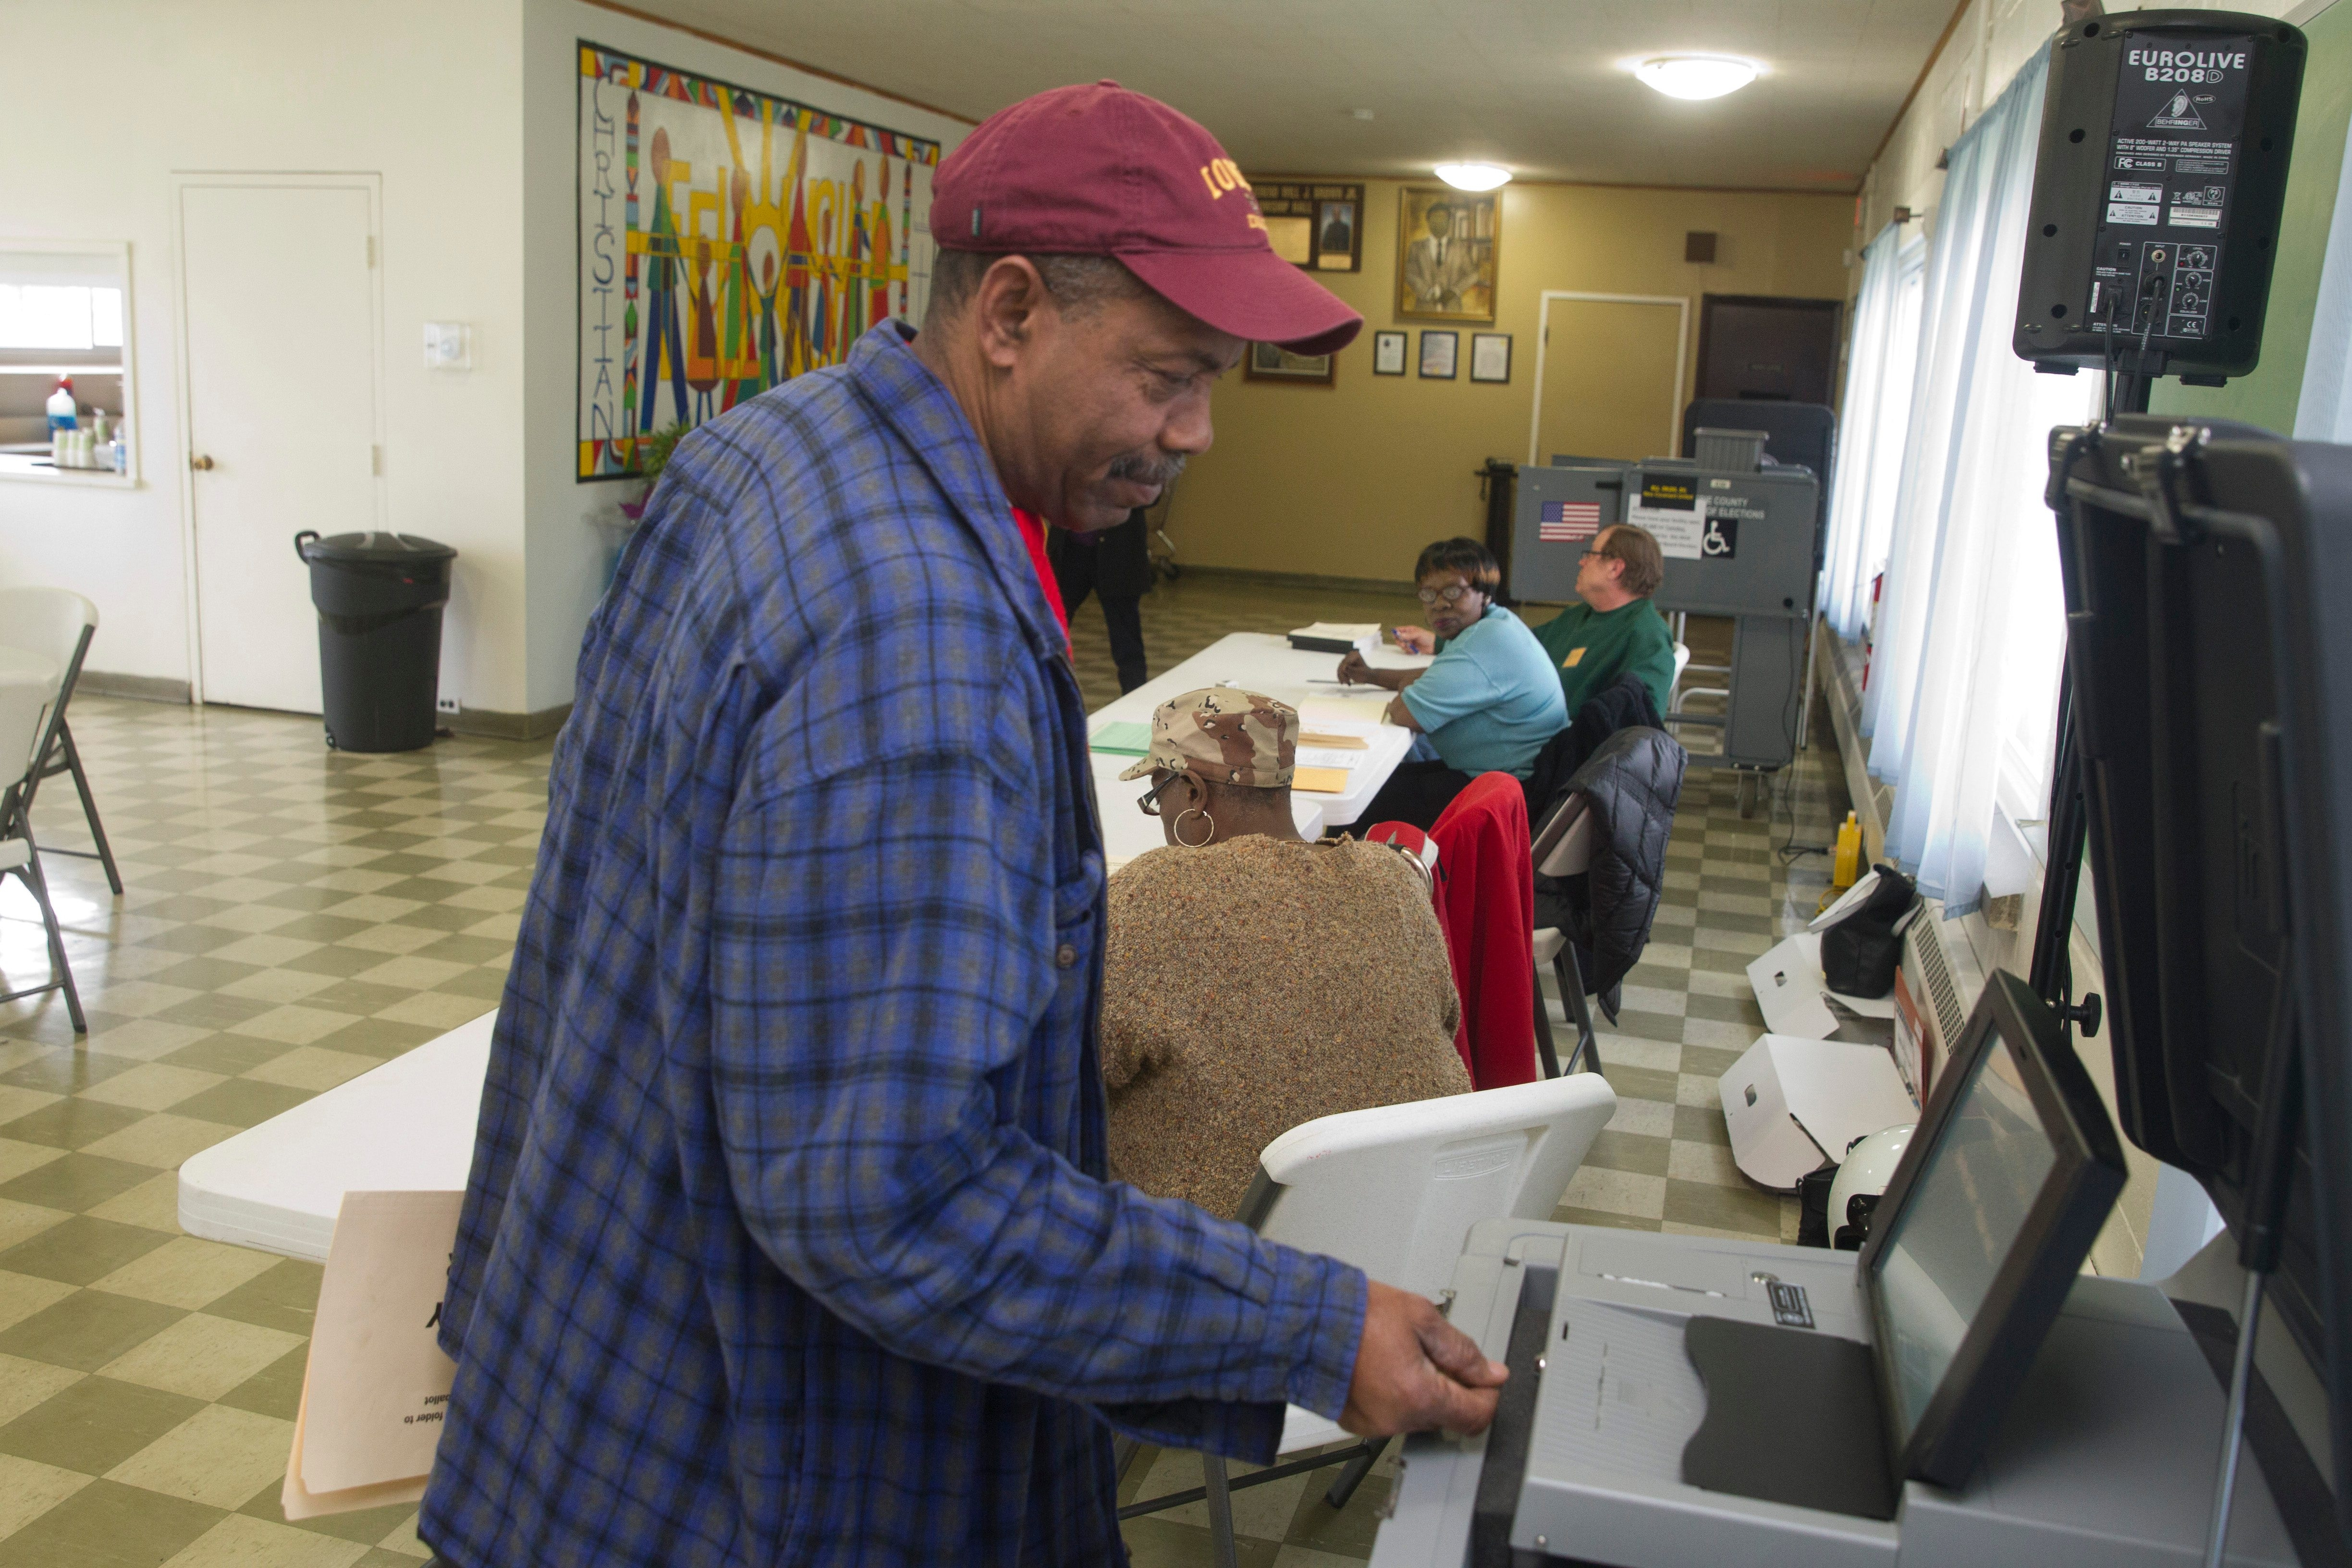 Ellis Woods, 66, said he voted for Paulette Woods – no relation – because he was concerned about the direction of the School Board. (John Hickey/Buffalo News)